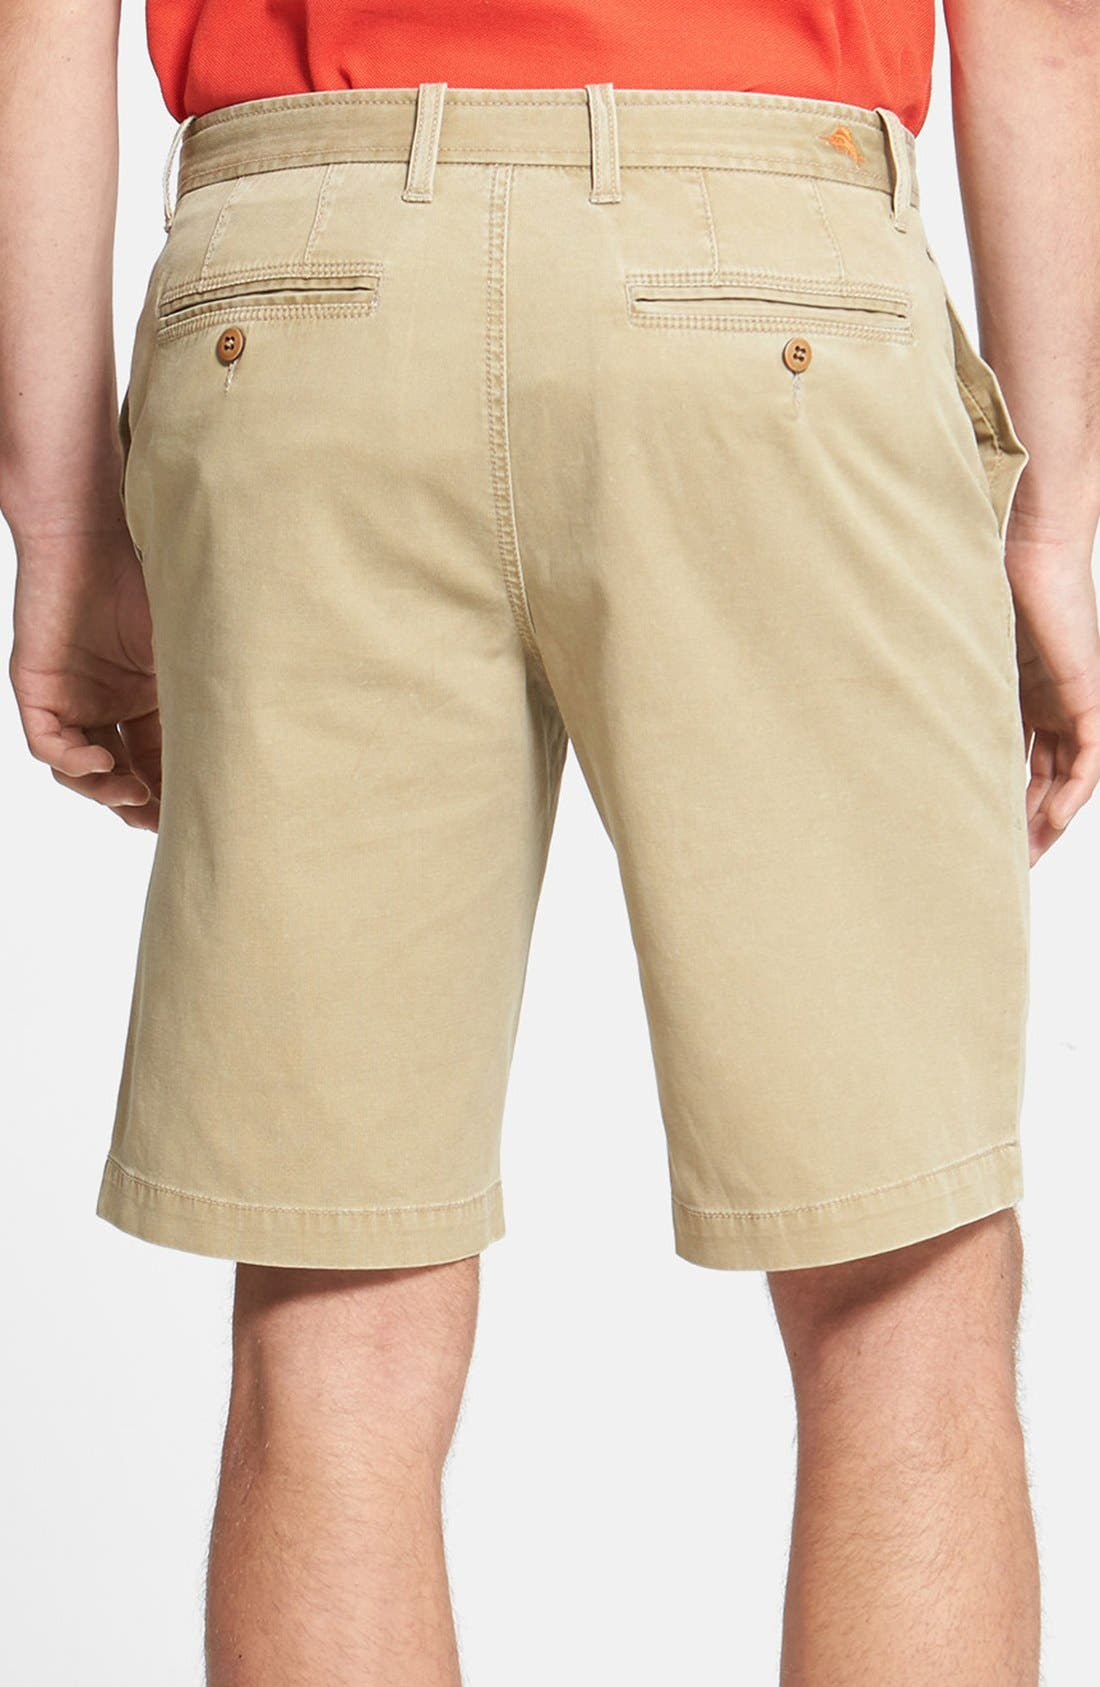 'Bedford & Son' Corduroy Walking Shorts,                             Alternate thumbnail 2, color,                             200